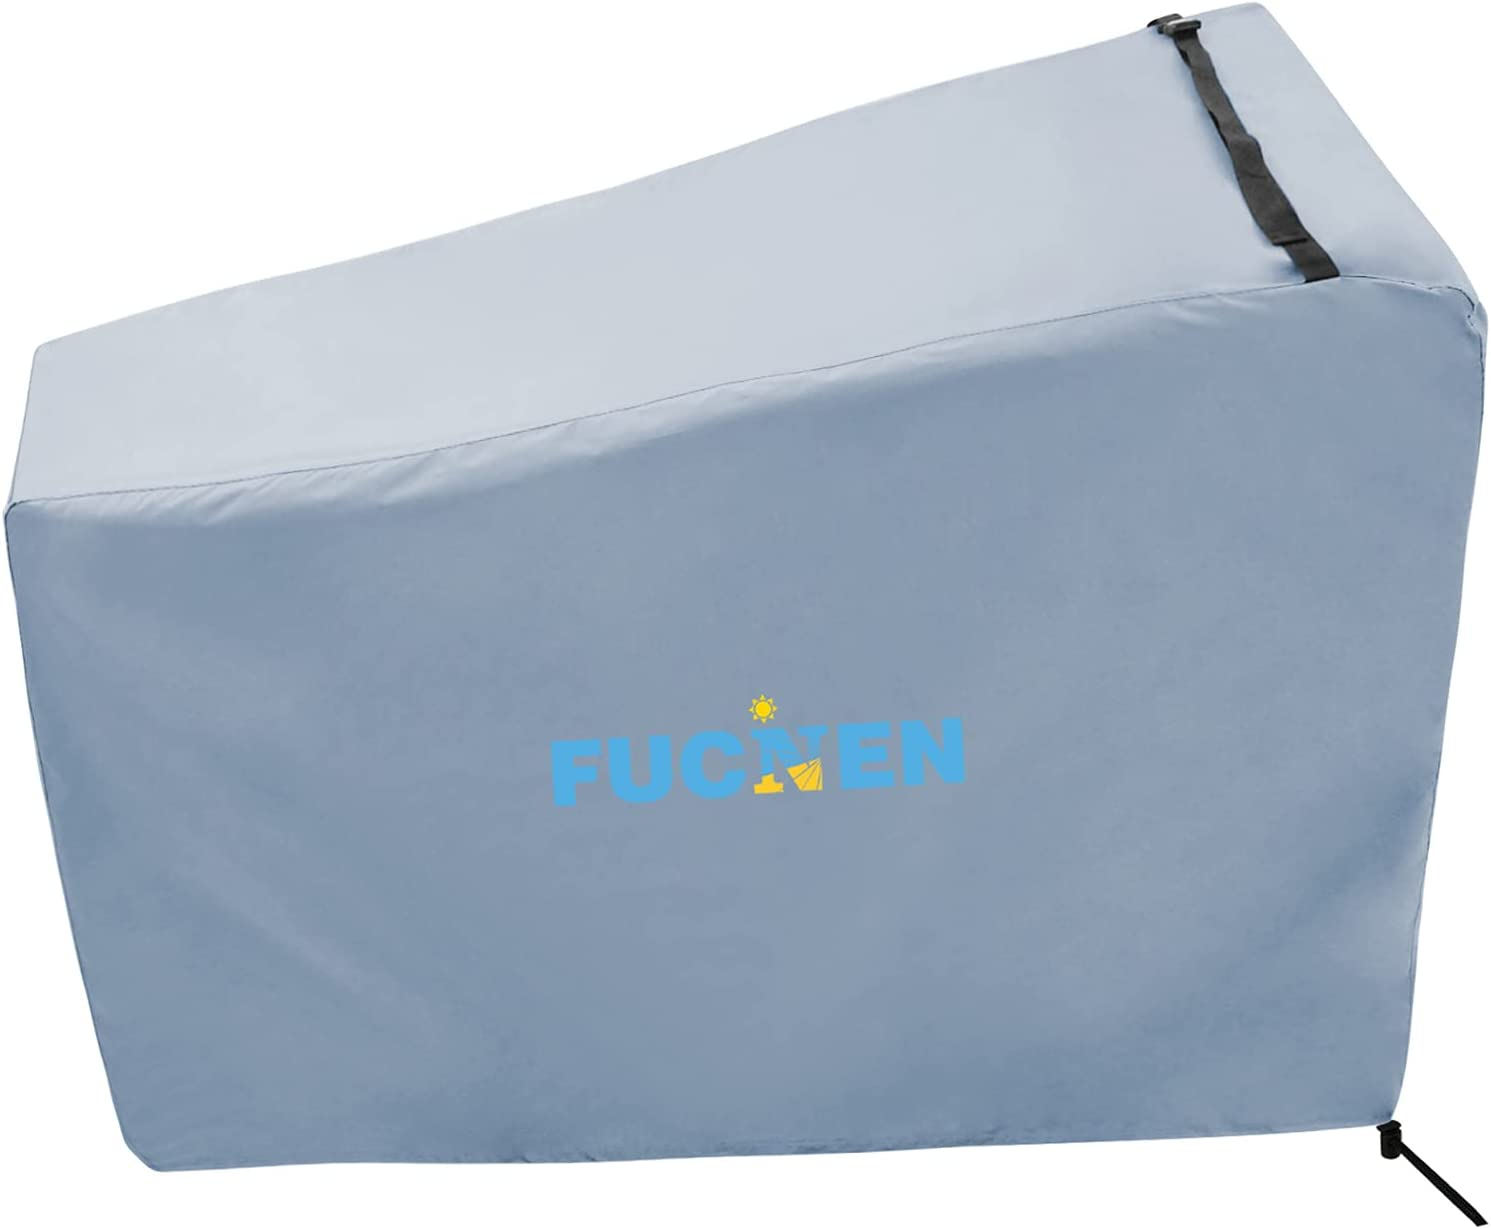 Exercise Bike Cover FUCNEN Protective Cover for Upright Stationa